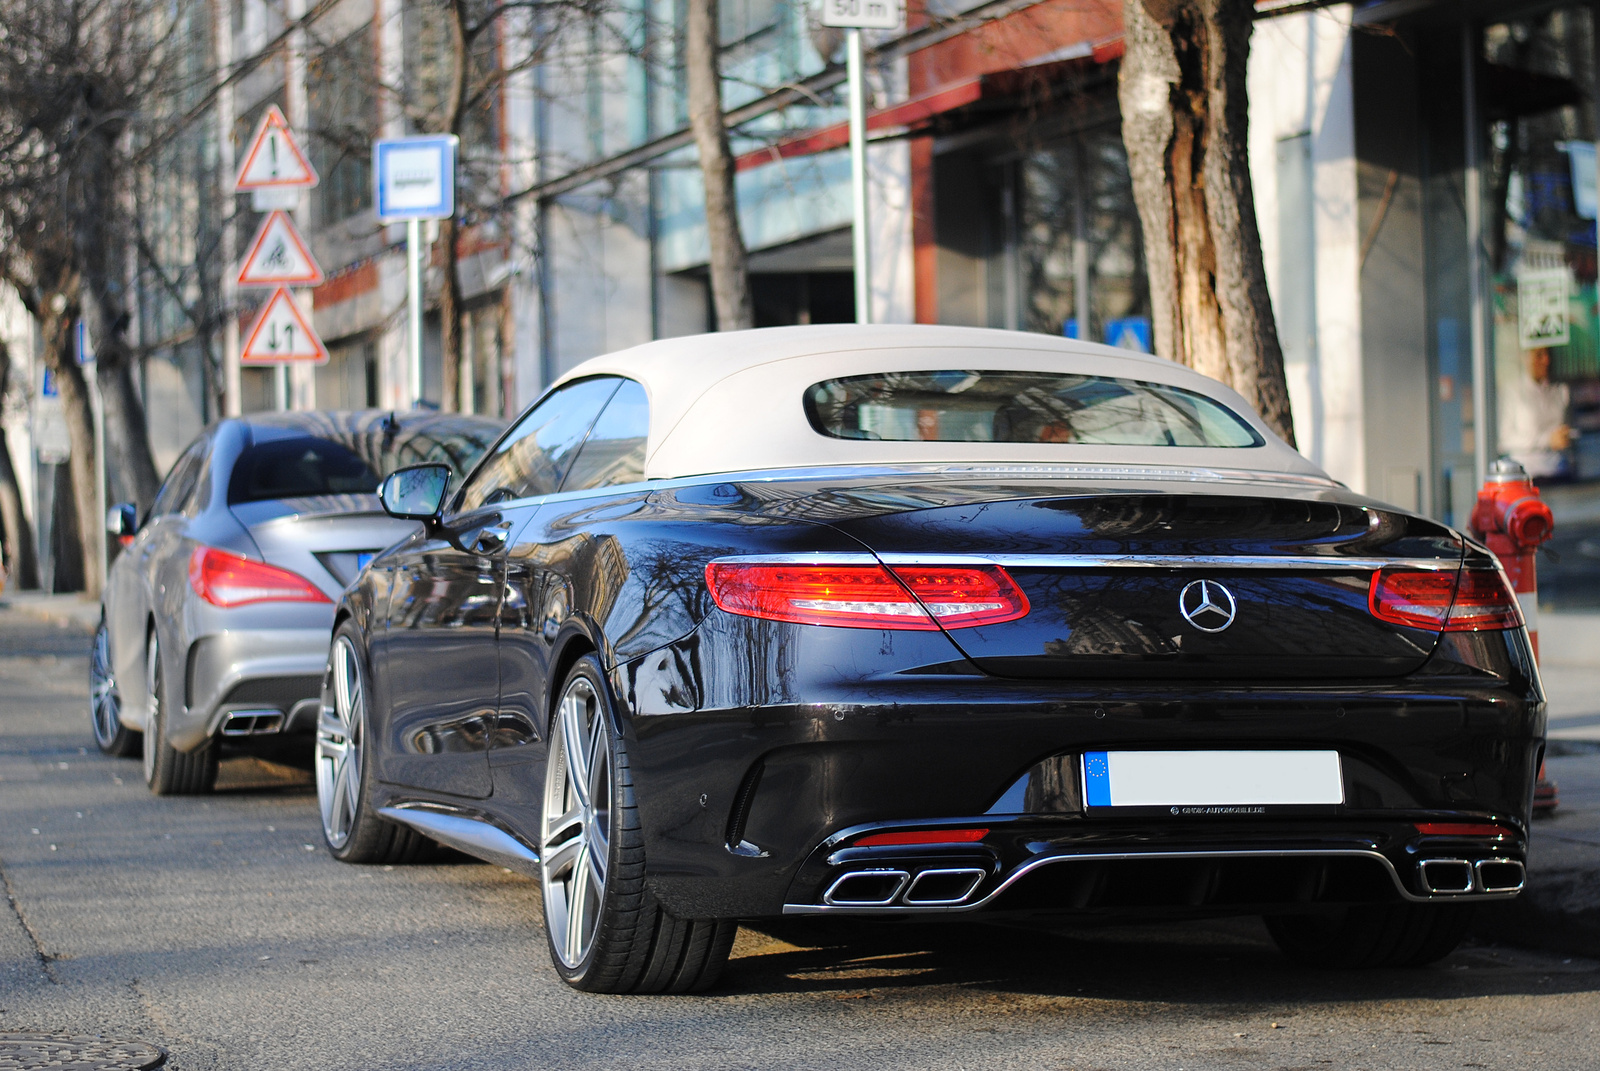 CLA 45 AMG C117 - S 63 Convertible A217